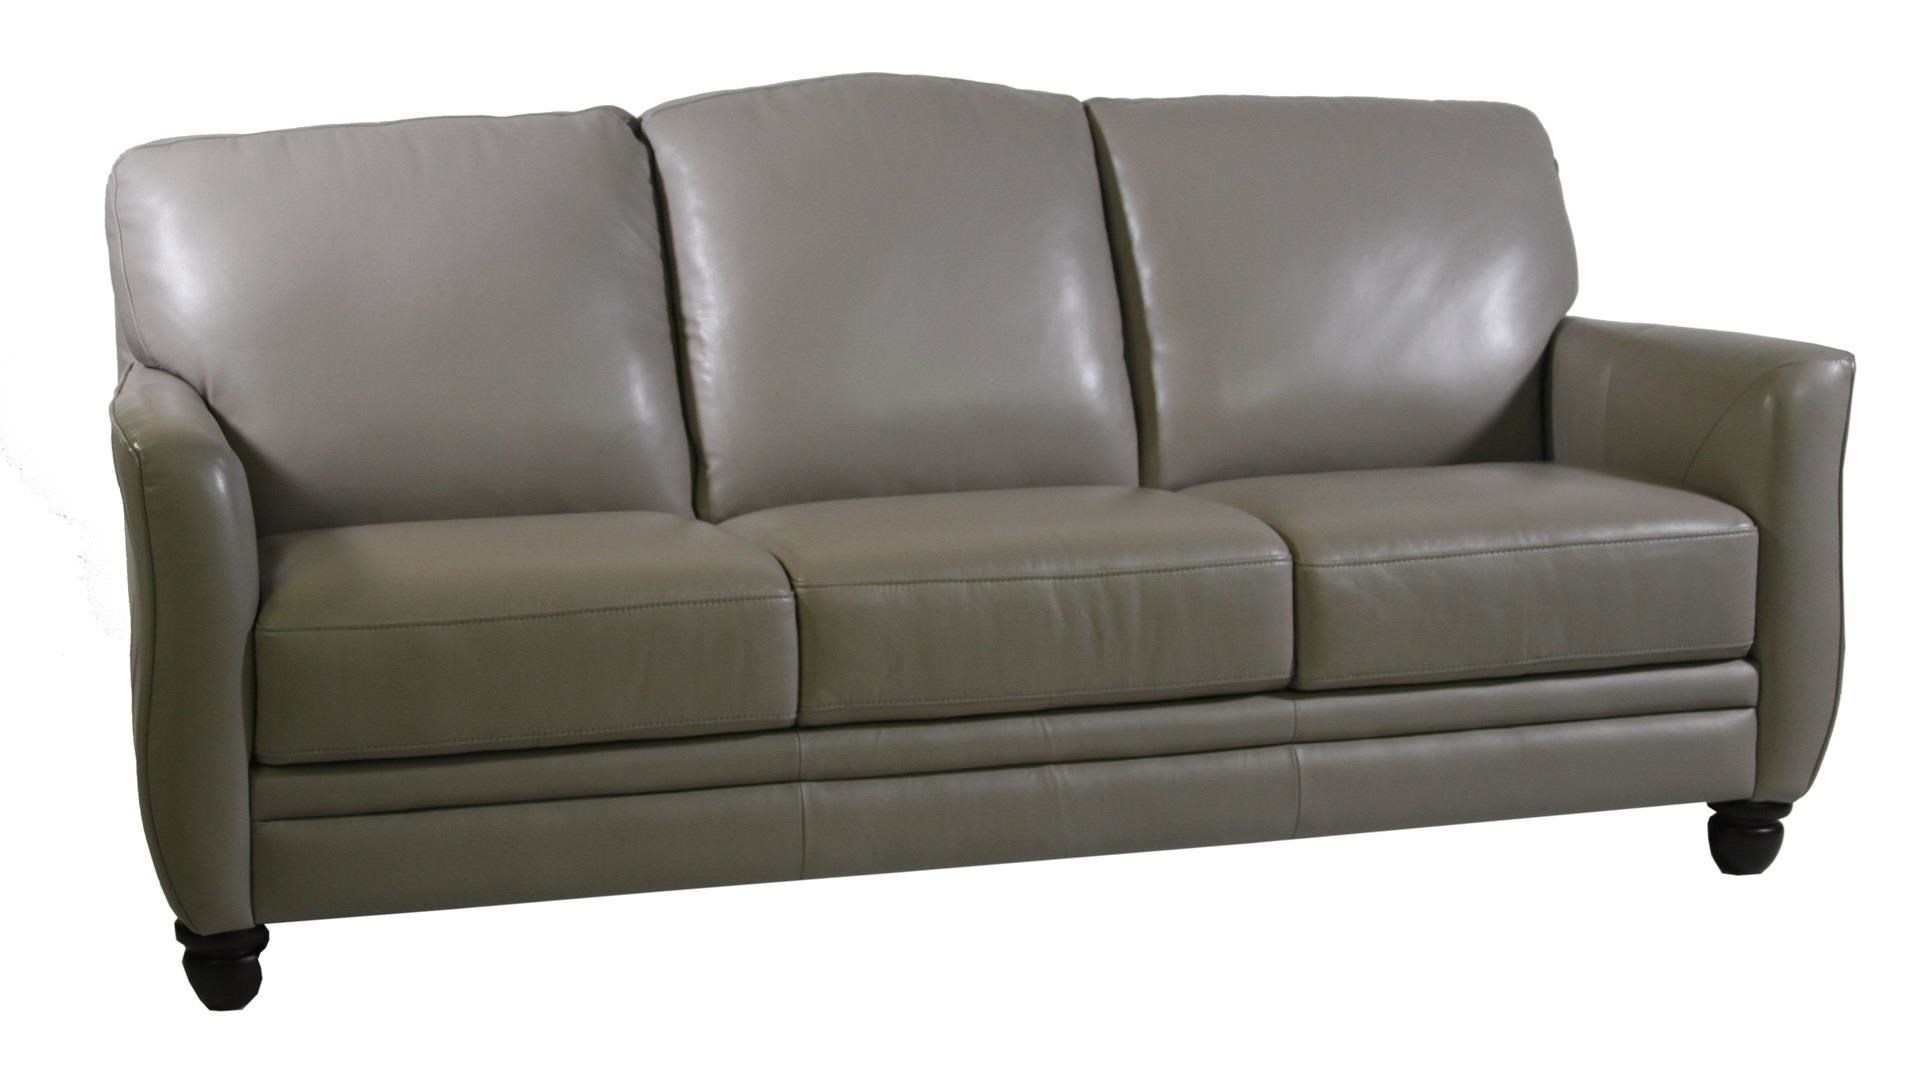 Alana Sofa By Futura Leather